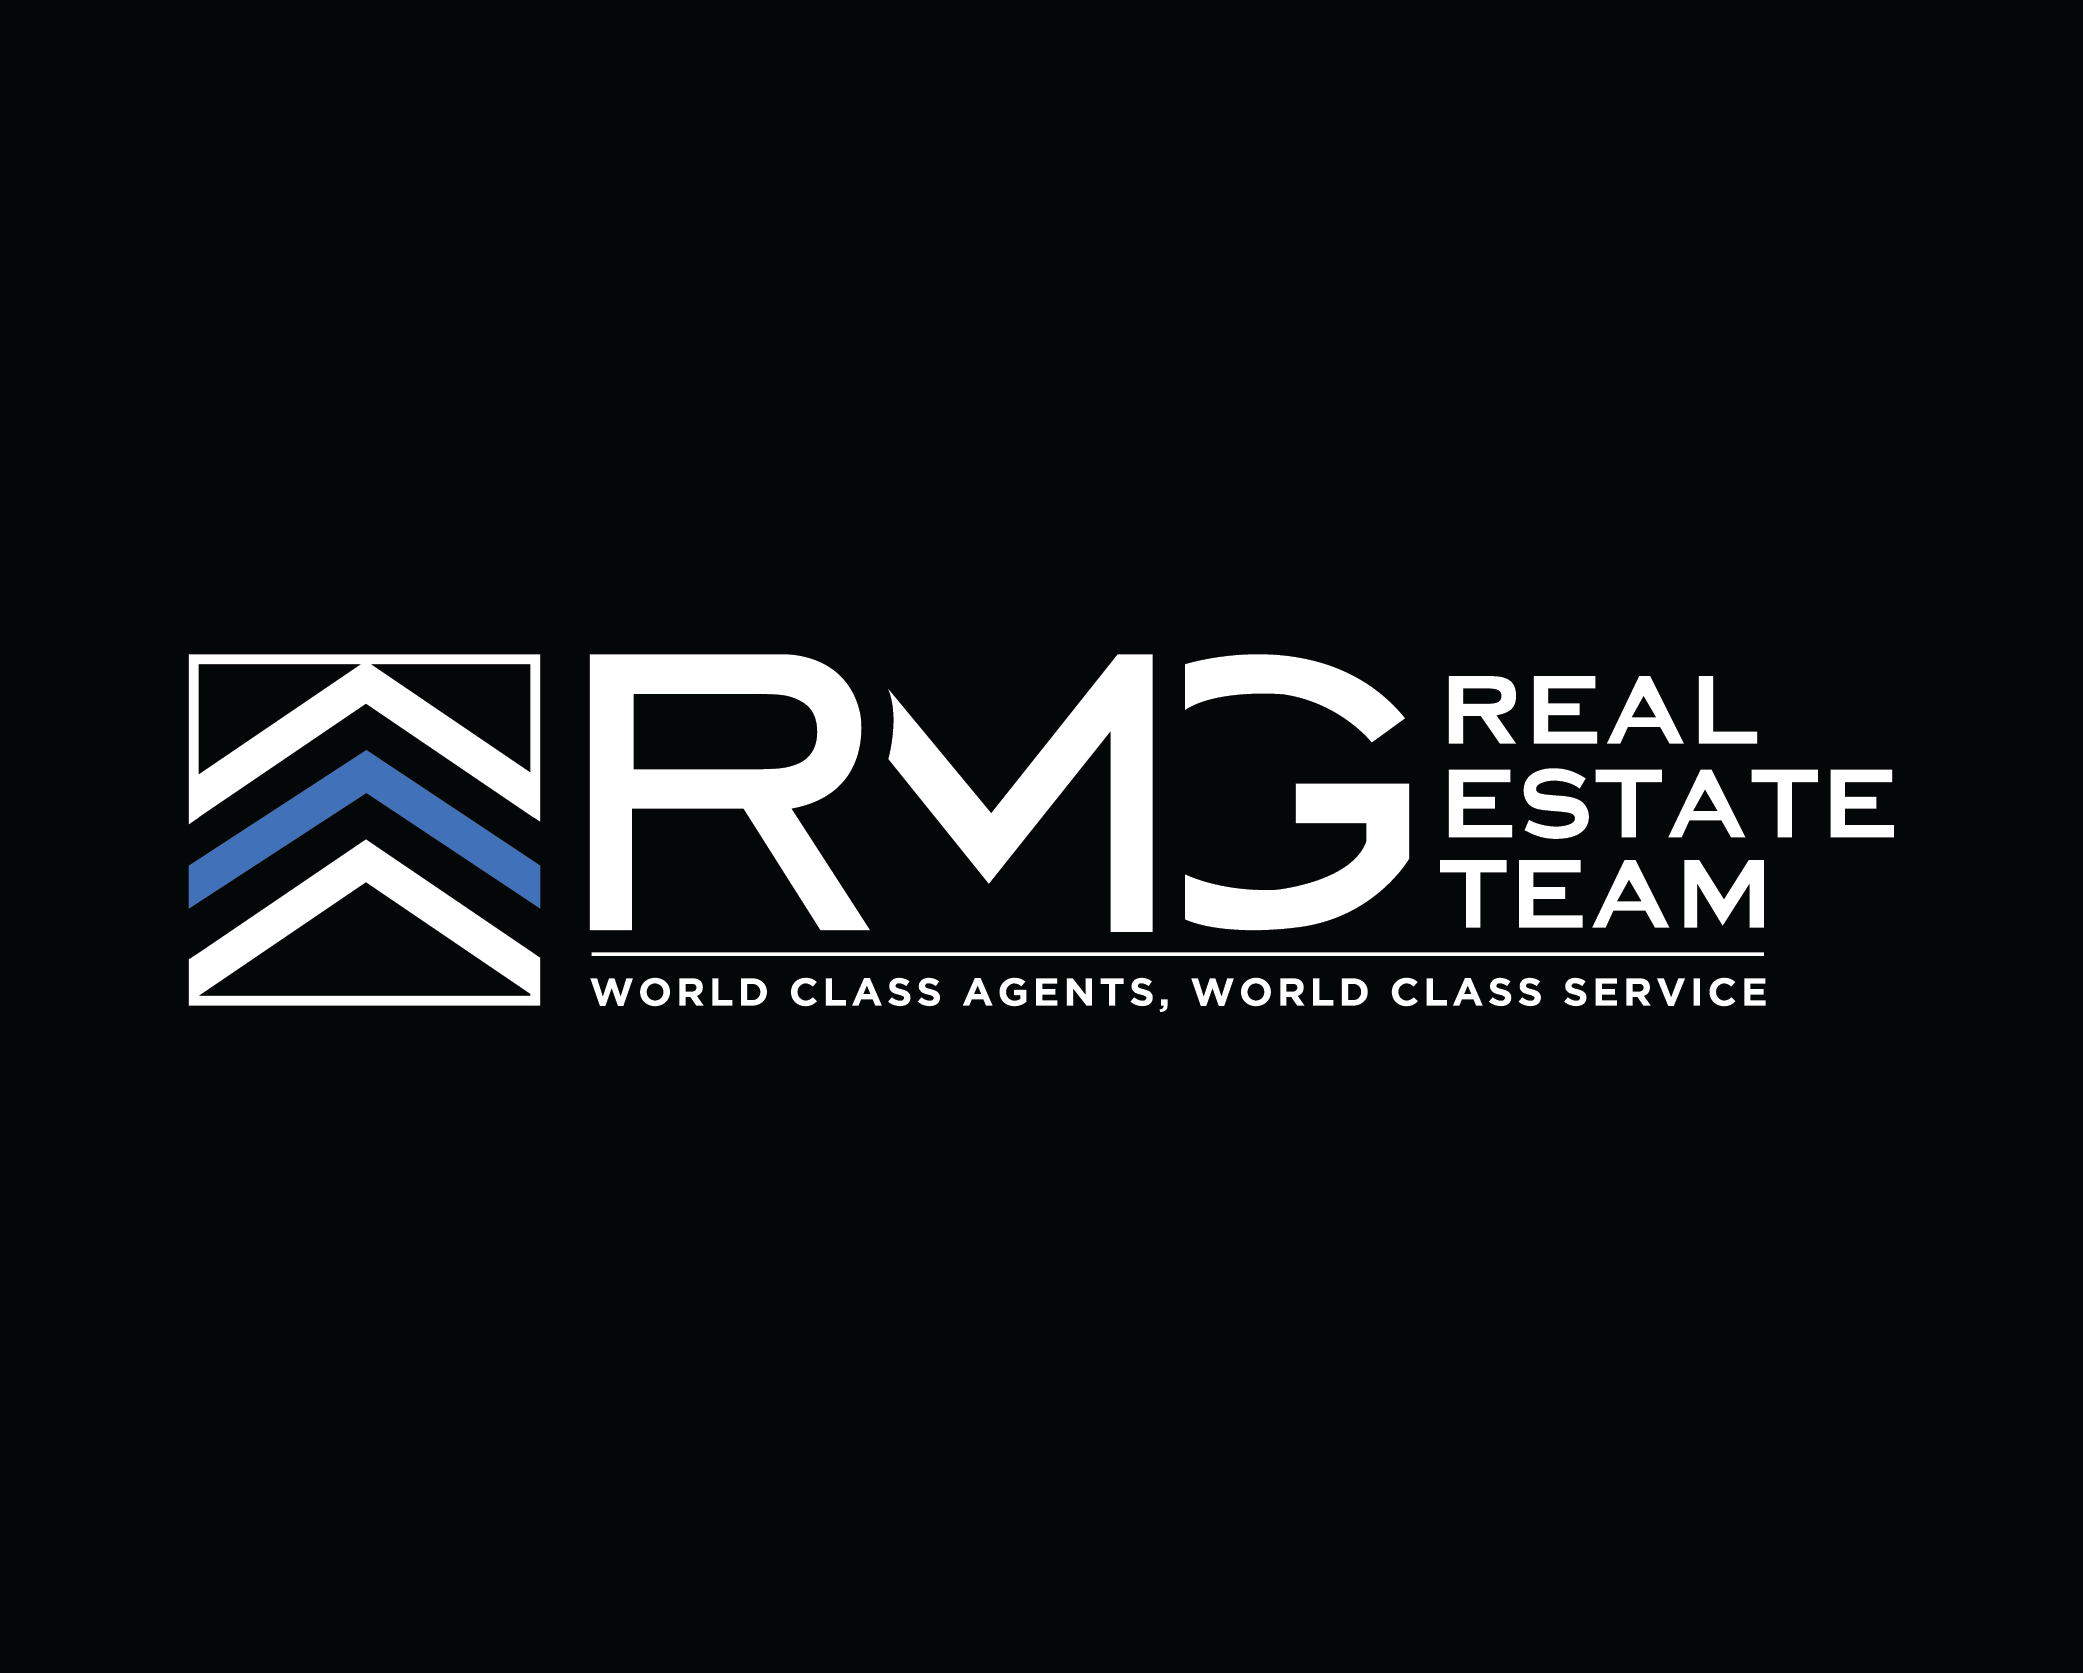 eXp Realty - Ray Meyer Group logo